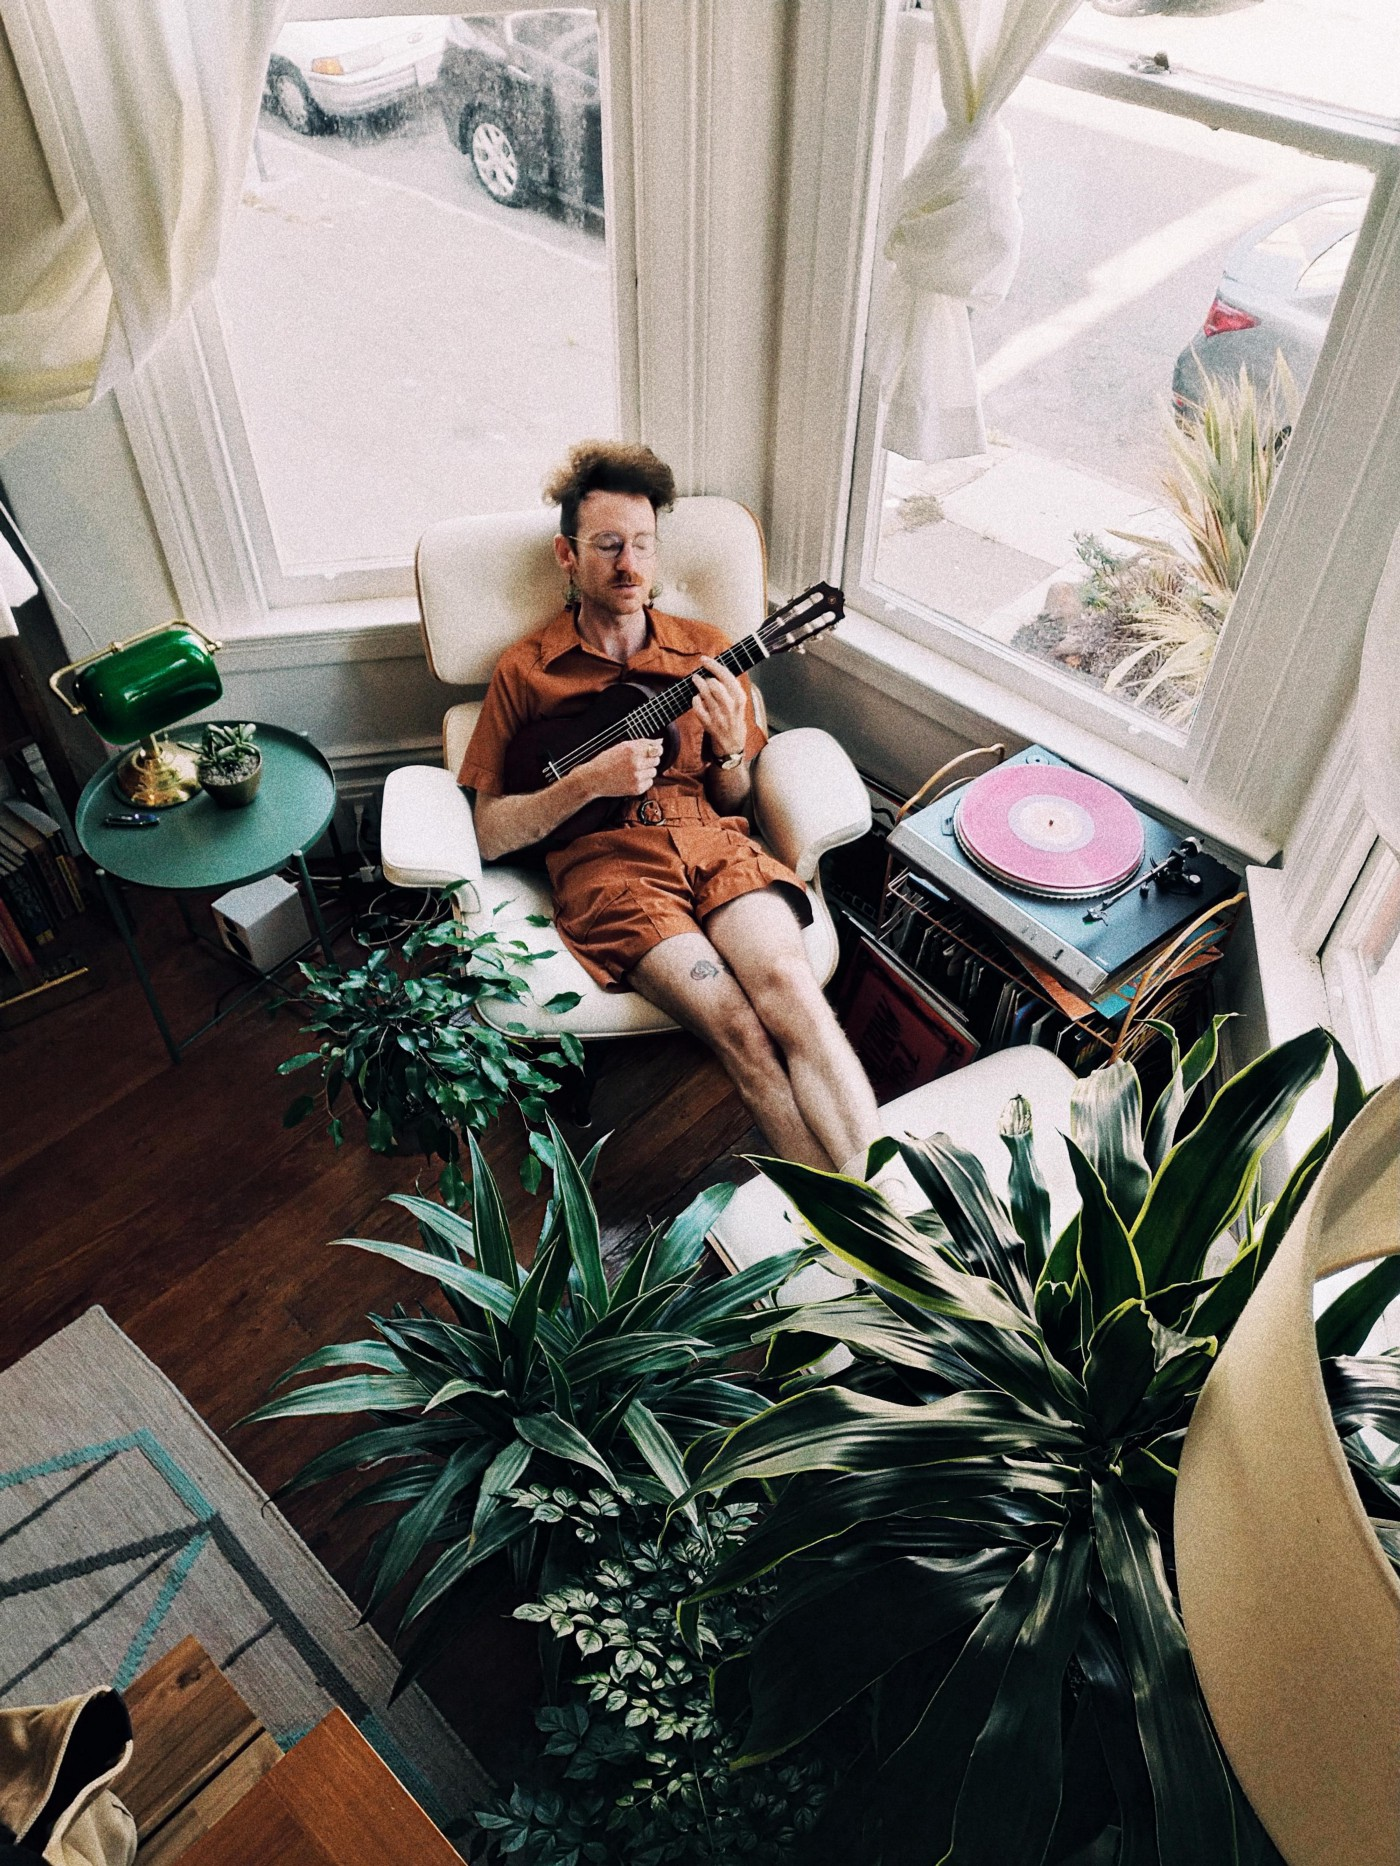 A young man chilling in an armchair, playing his ukulele next to a vintage record player.